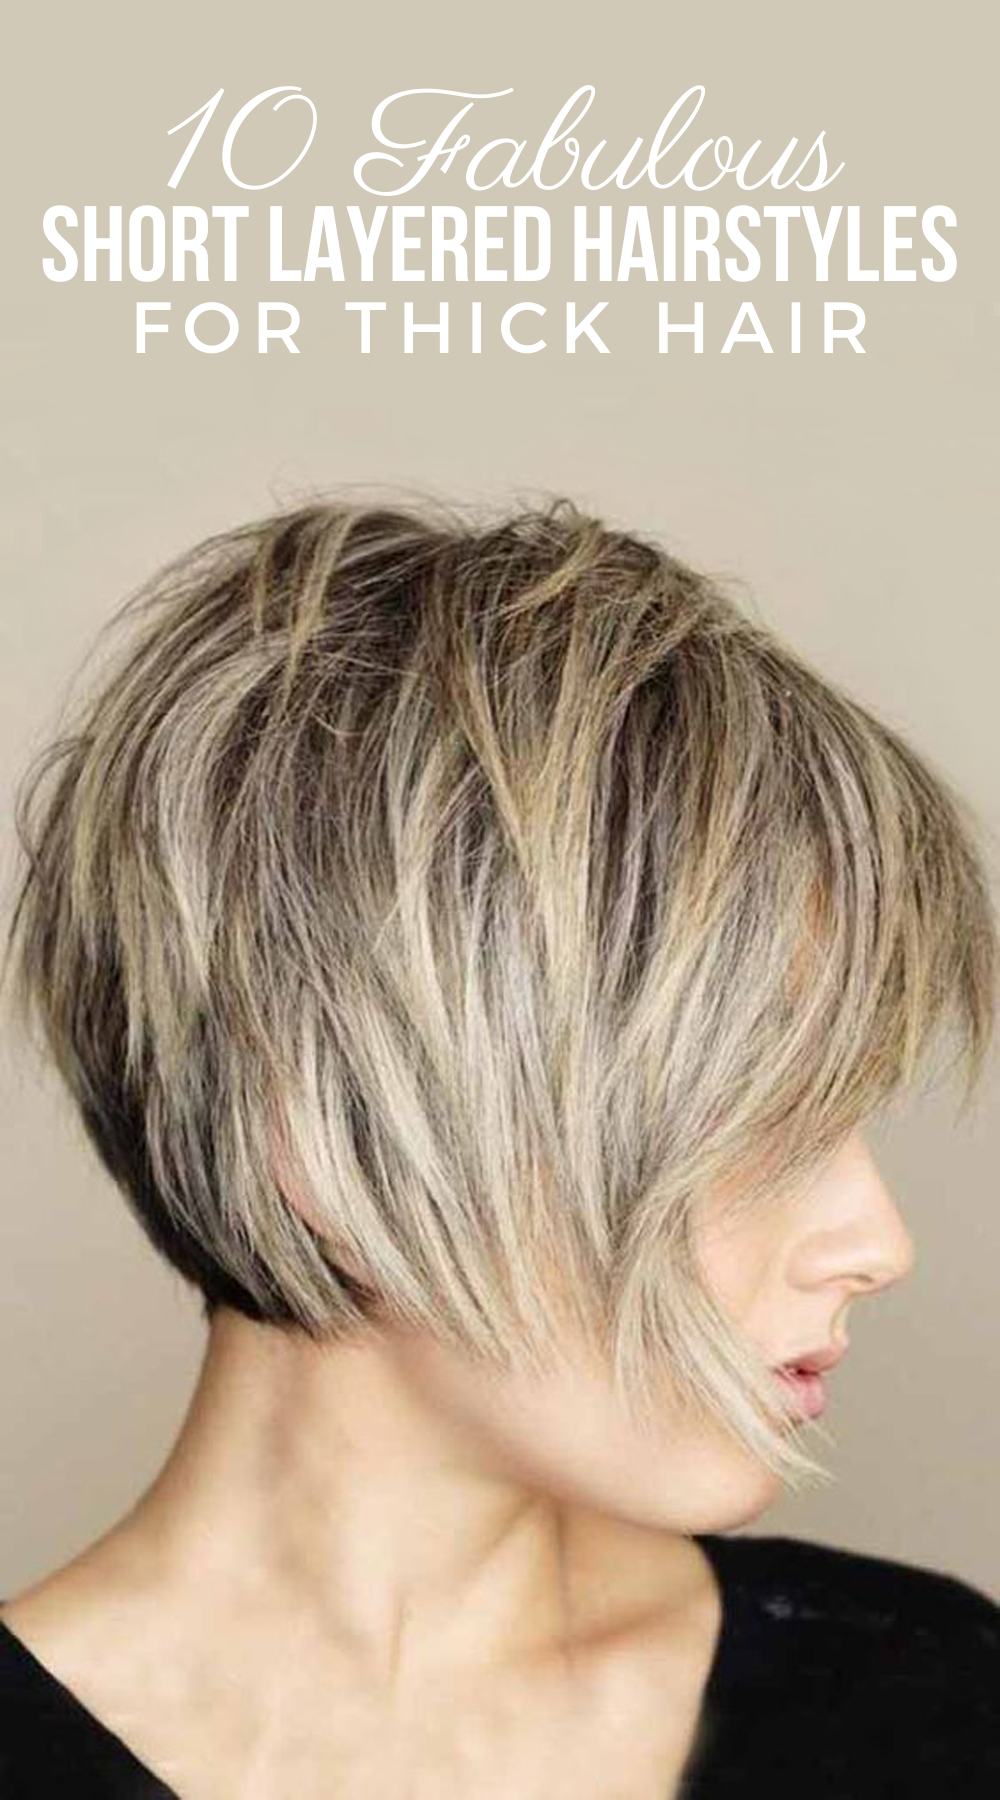 10 Cutest Short Layered Hairstyles For Your Thick Hair You Should Apply In 2020 Thick Hair Styles Short Hair With Layers Bobs Haircuts